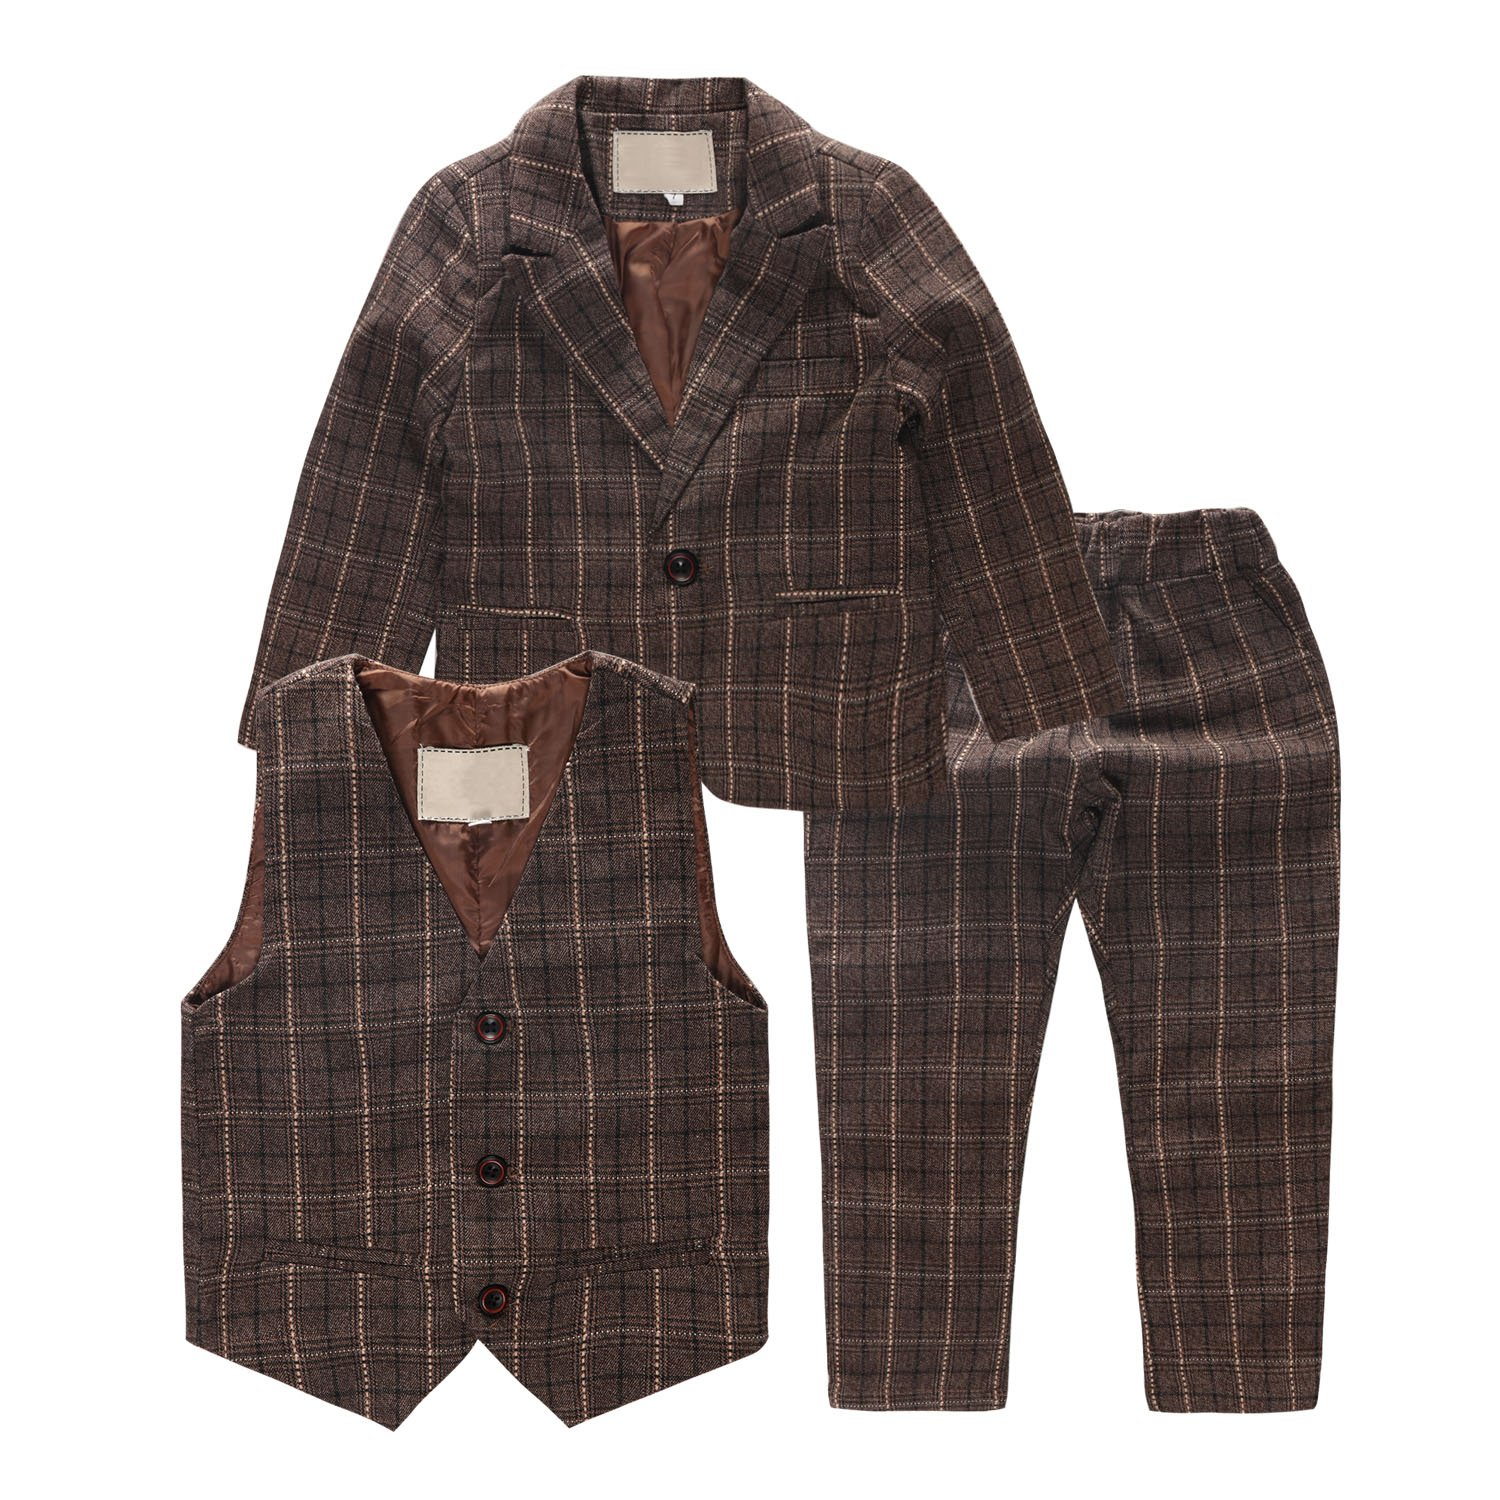 Coodebear Big Boys' Coat Pant Vest 3 Piece Cotton Lapel Lattice Suit Set